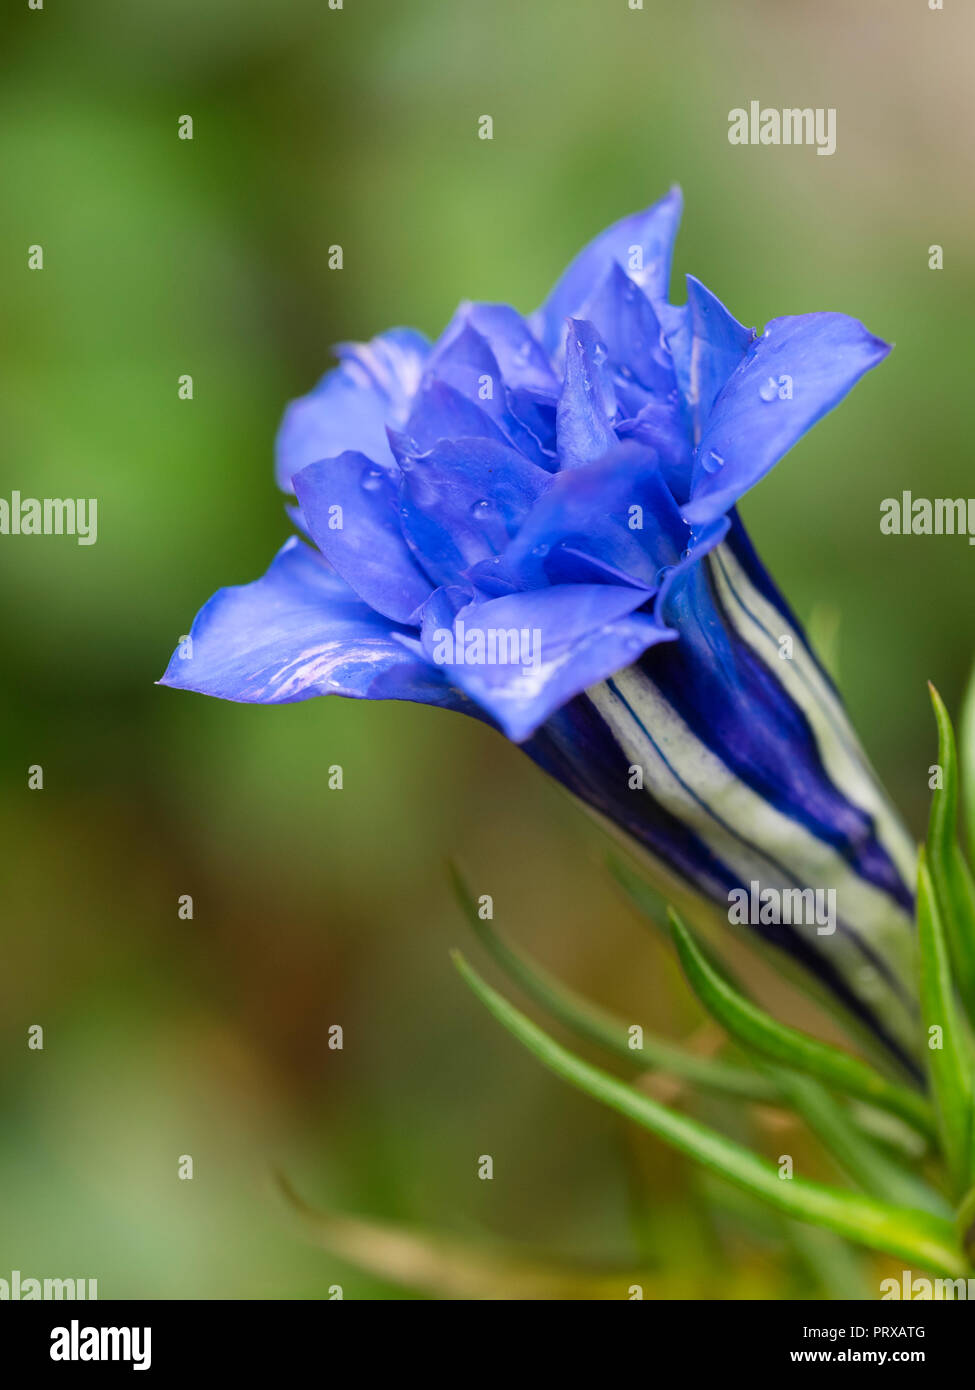 White lined blue double flowers of of the hardy, Autumn blooming alpine perennial gentian, Gentiana sino-ornata 'Eugens Allerbester' Stock Photo